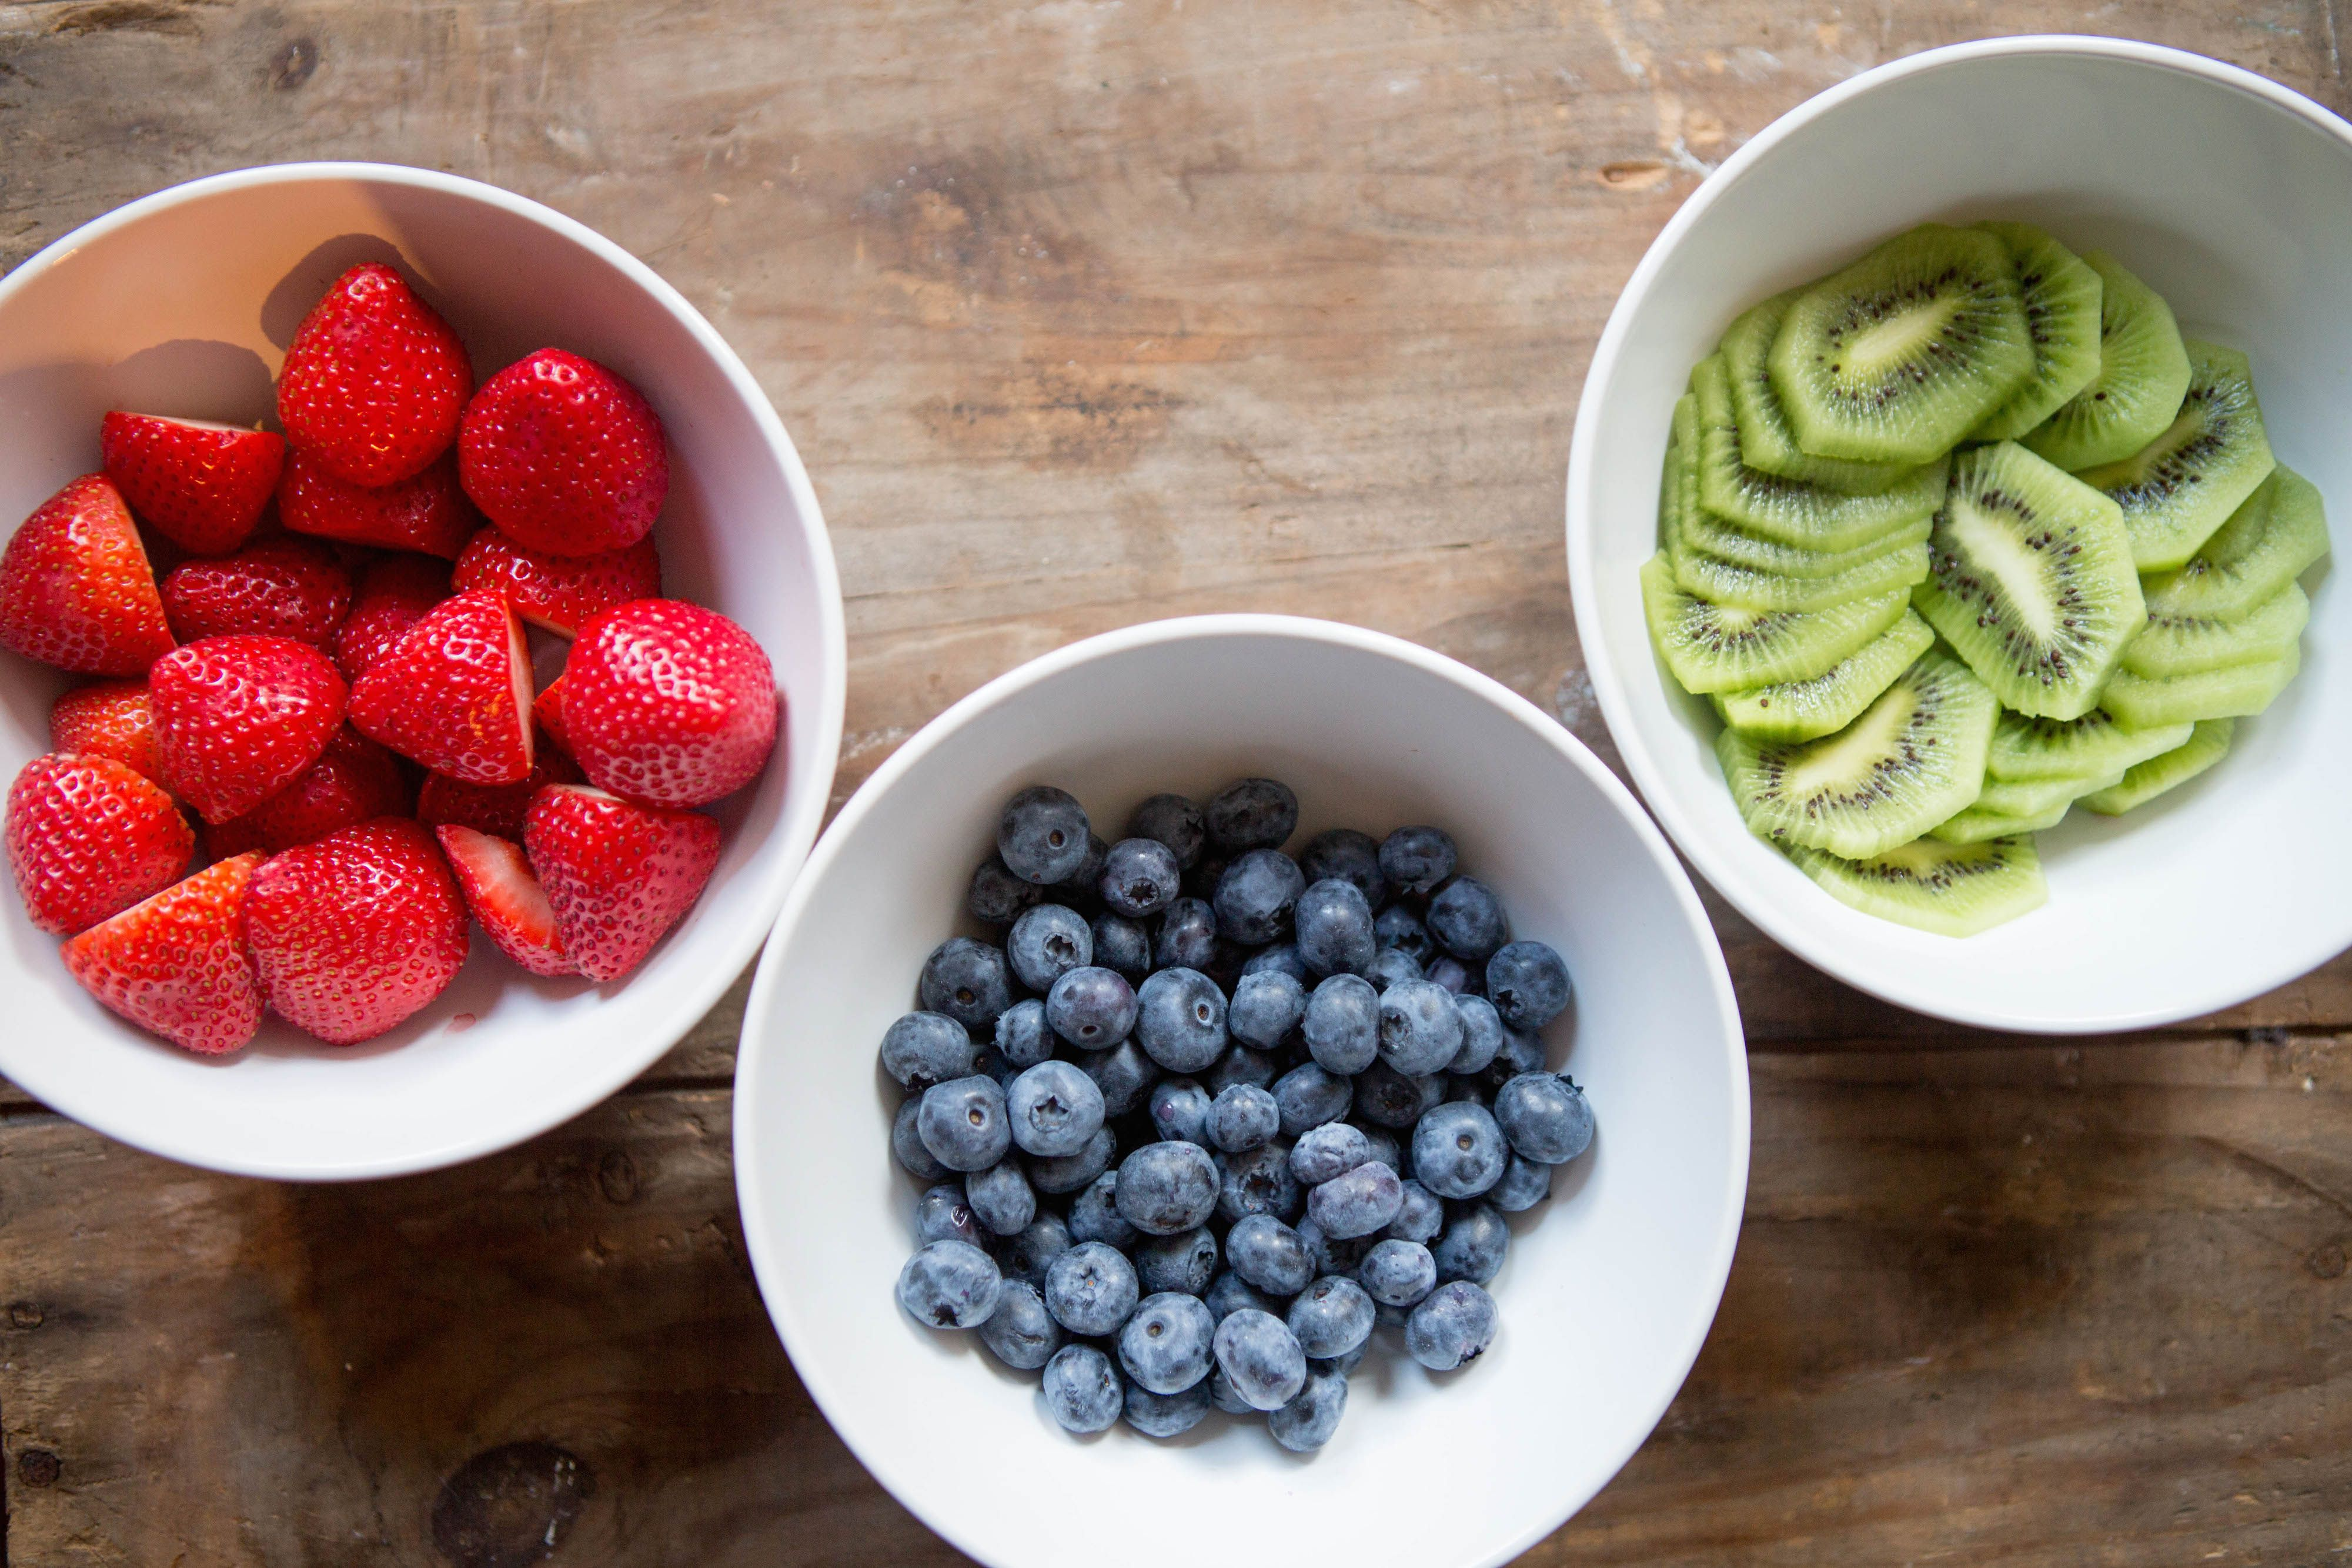 How many calories in blueberries 100g